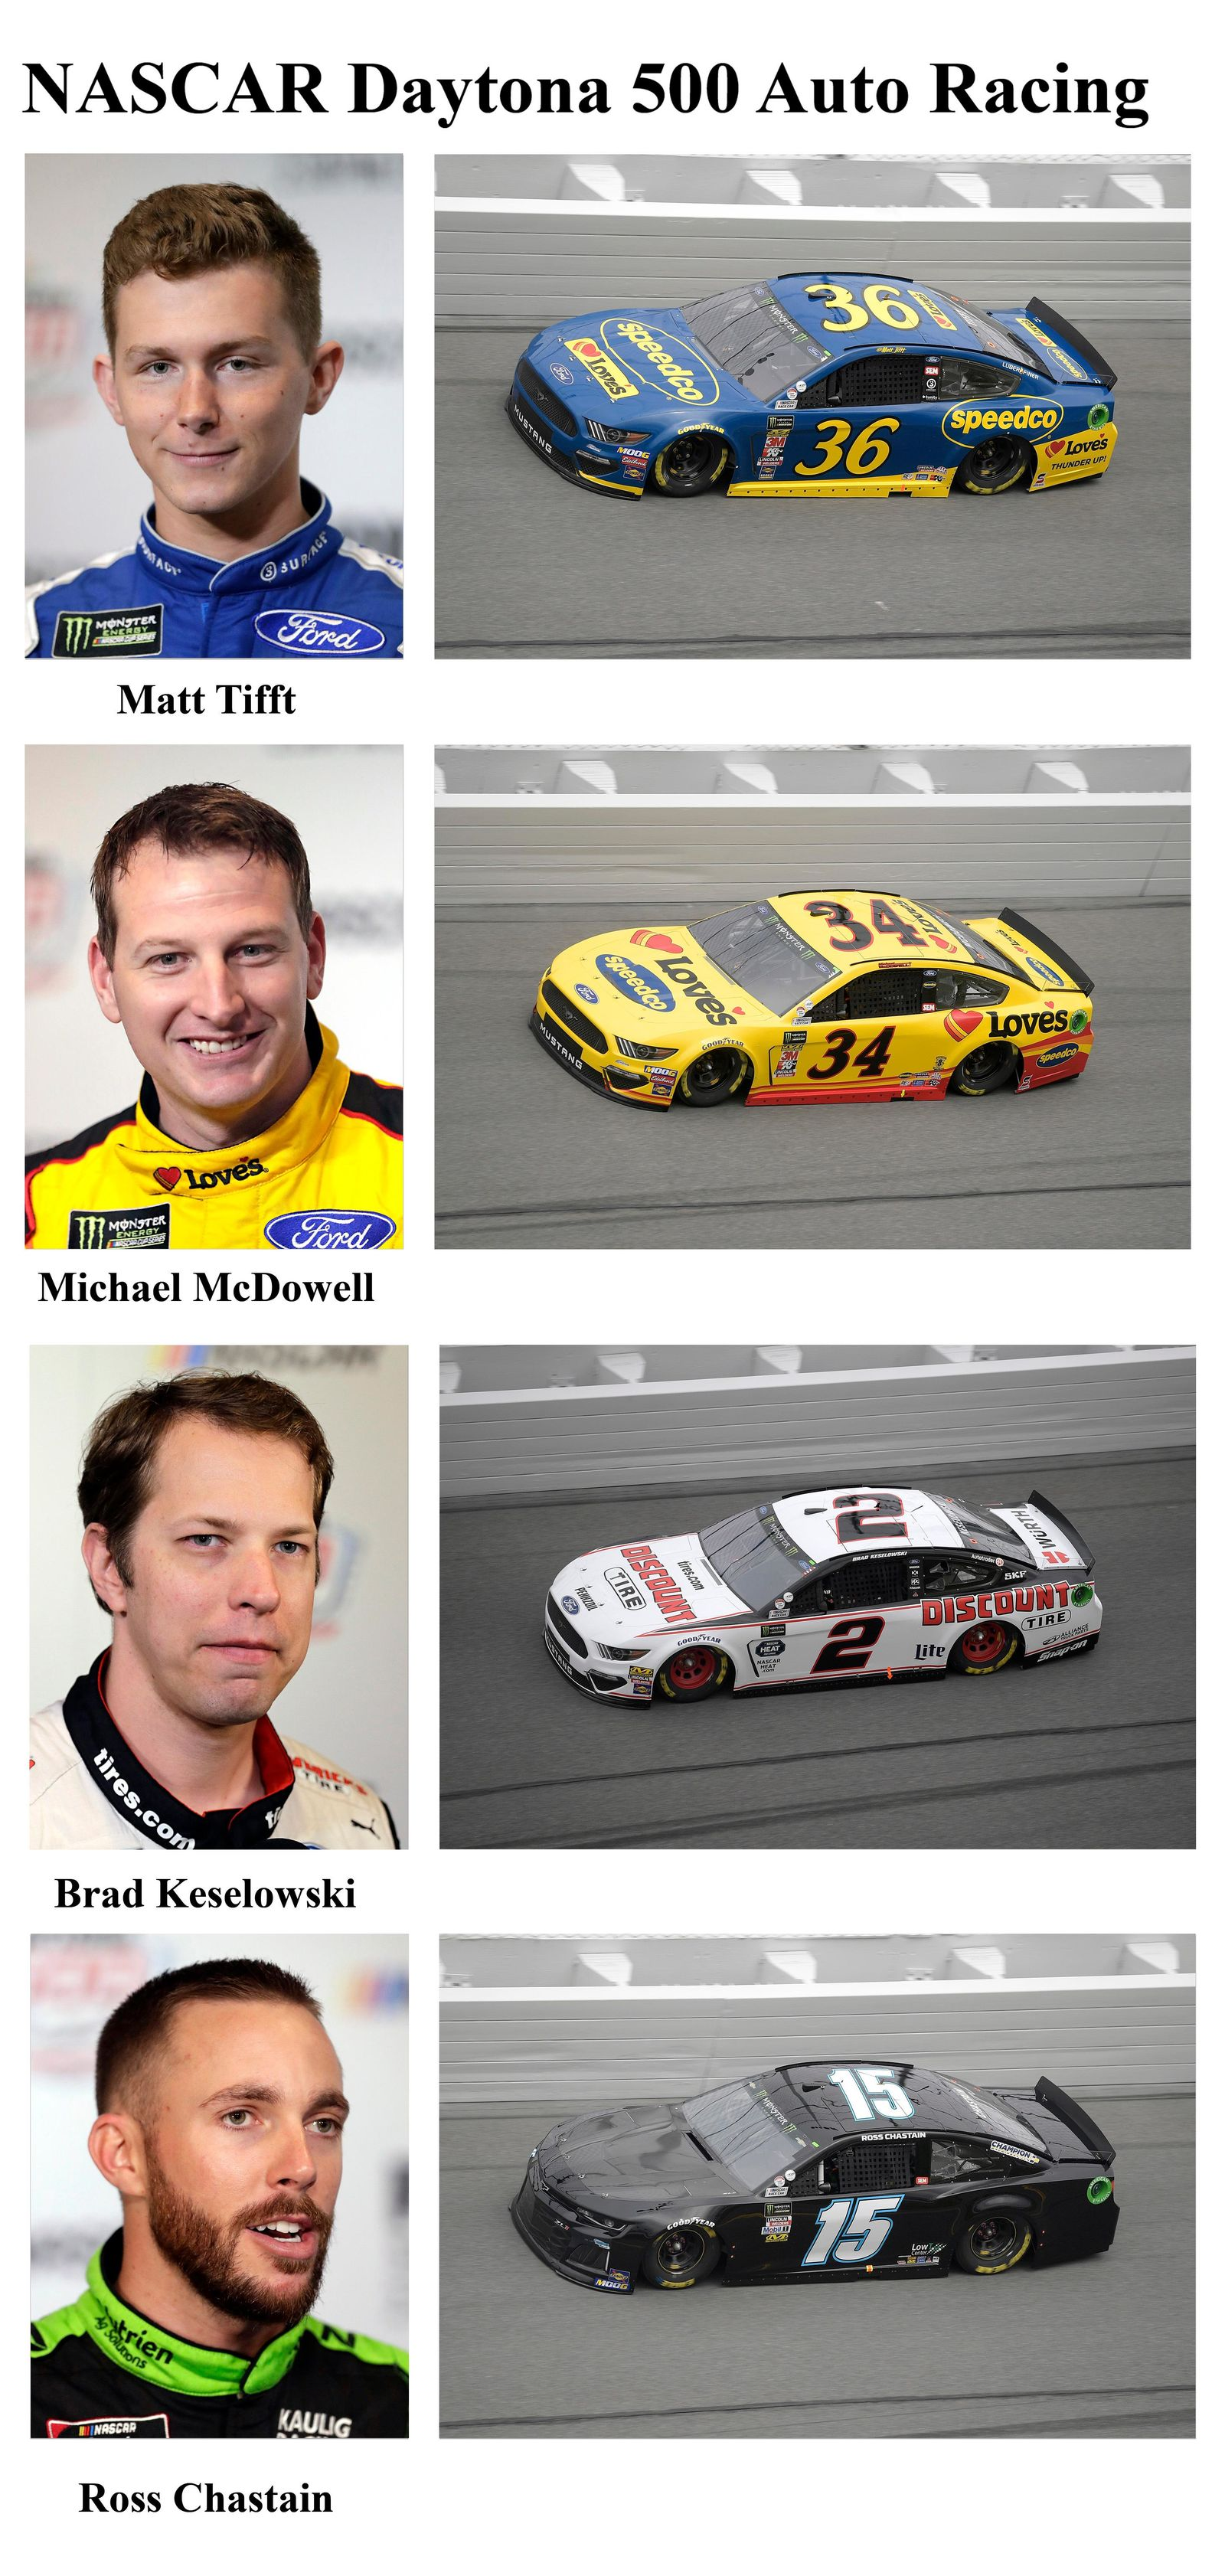 In these photos taken in February 2019, qualifying drivers and their cars in the starting field for Sunday's NASCAR Daytona 500 auto race are shown at Daytona International Speedway in Daytona Beach, Fla. They are, from top, Row 17, Matt Tifft, Michael McDowell, Row 18, Brad Keselowski and Ross Chastain. (AP Photo)